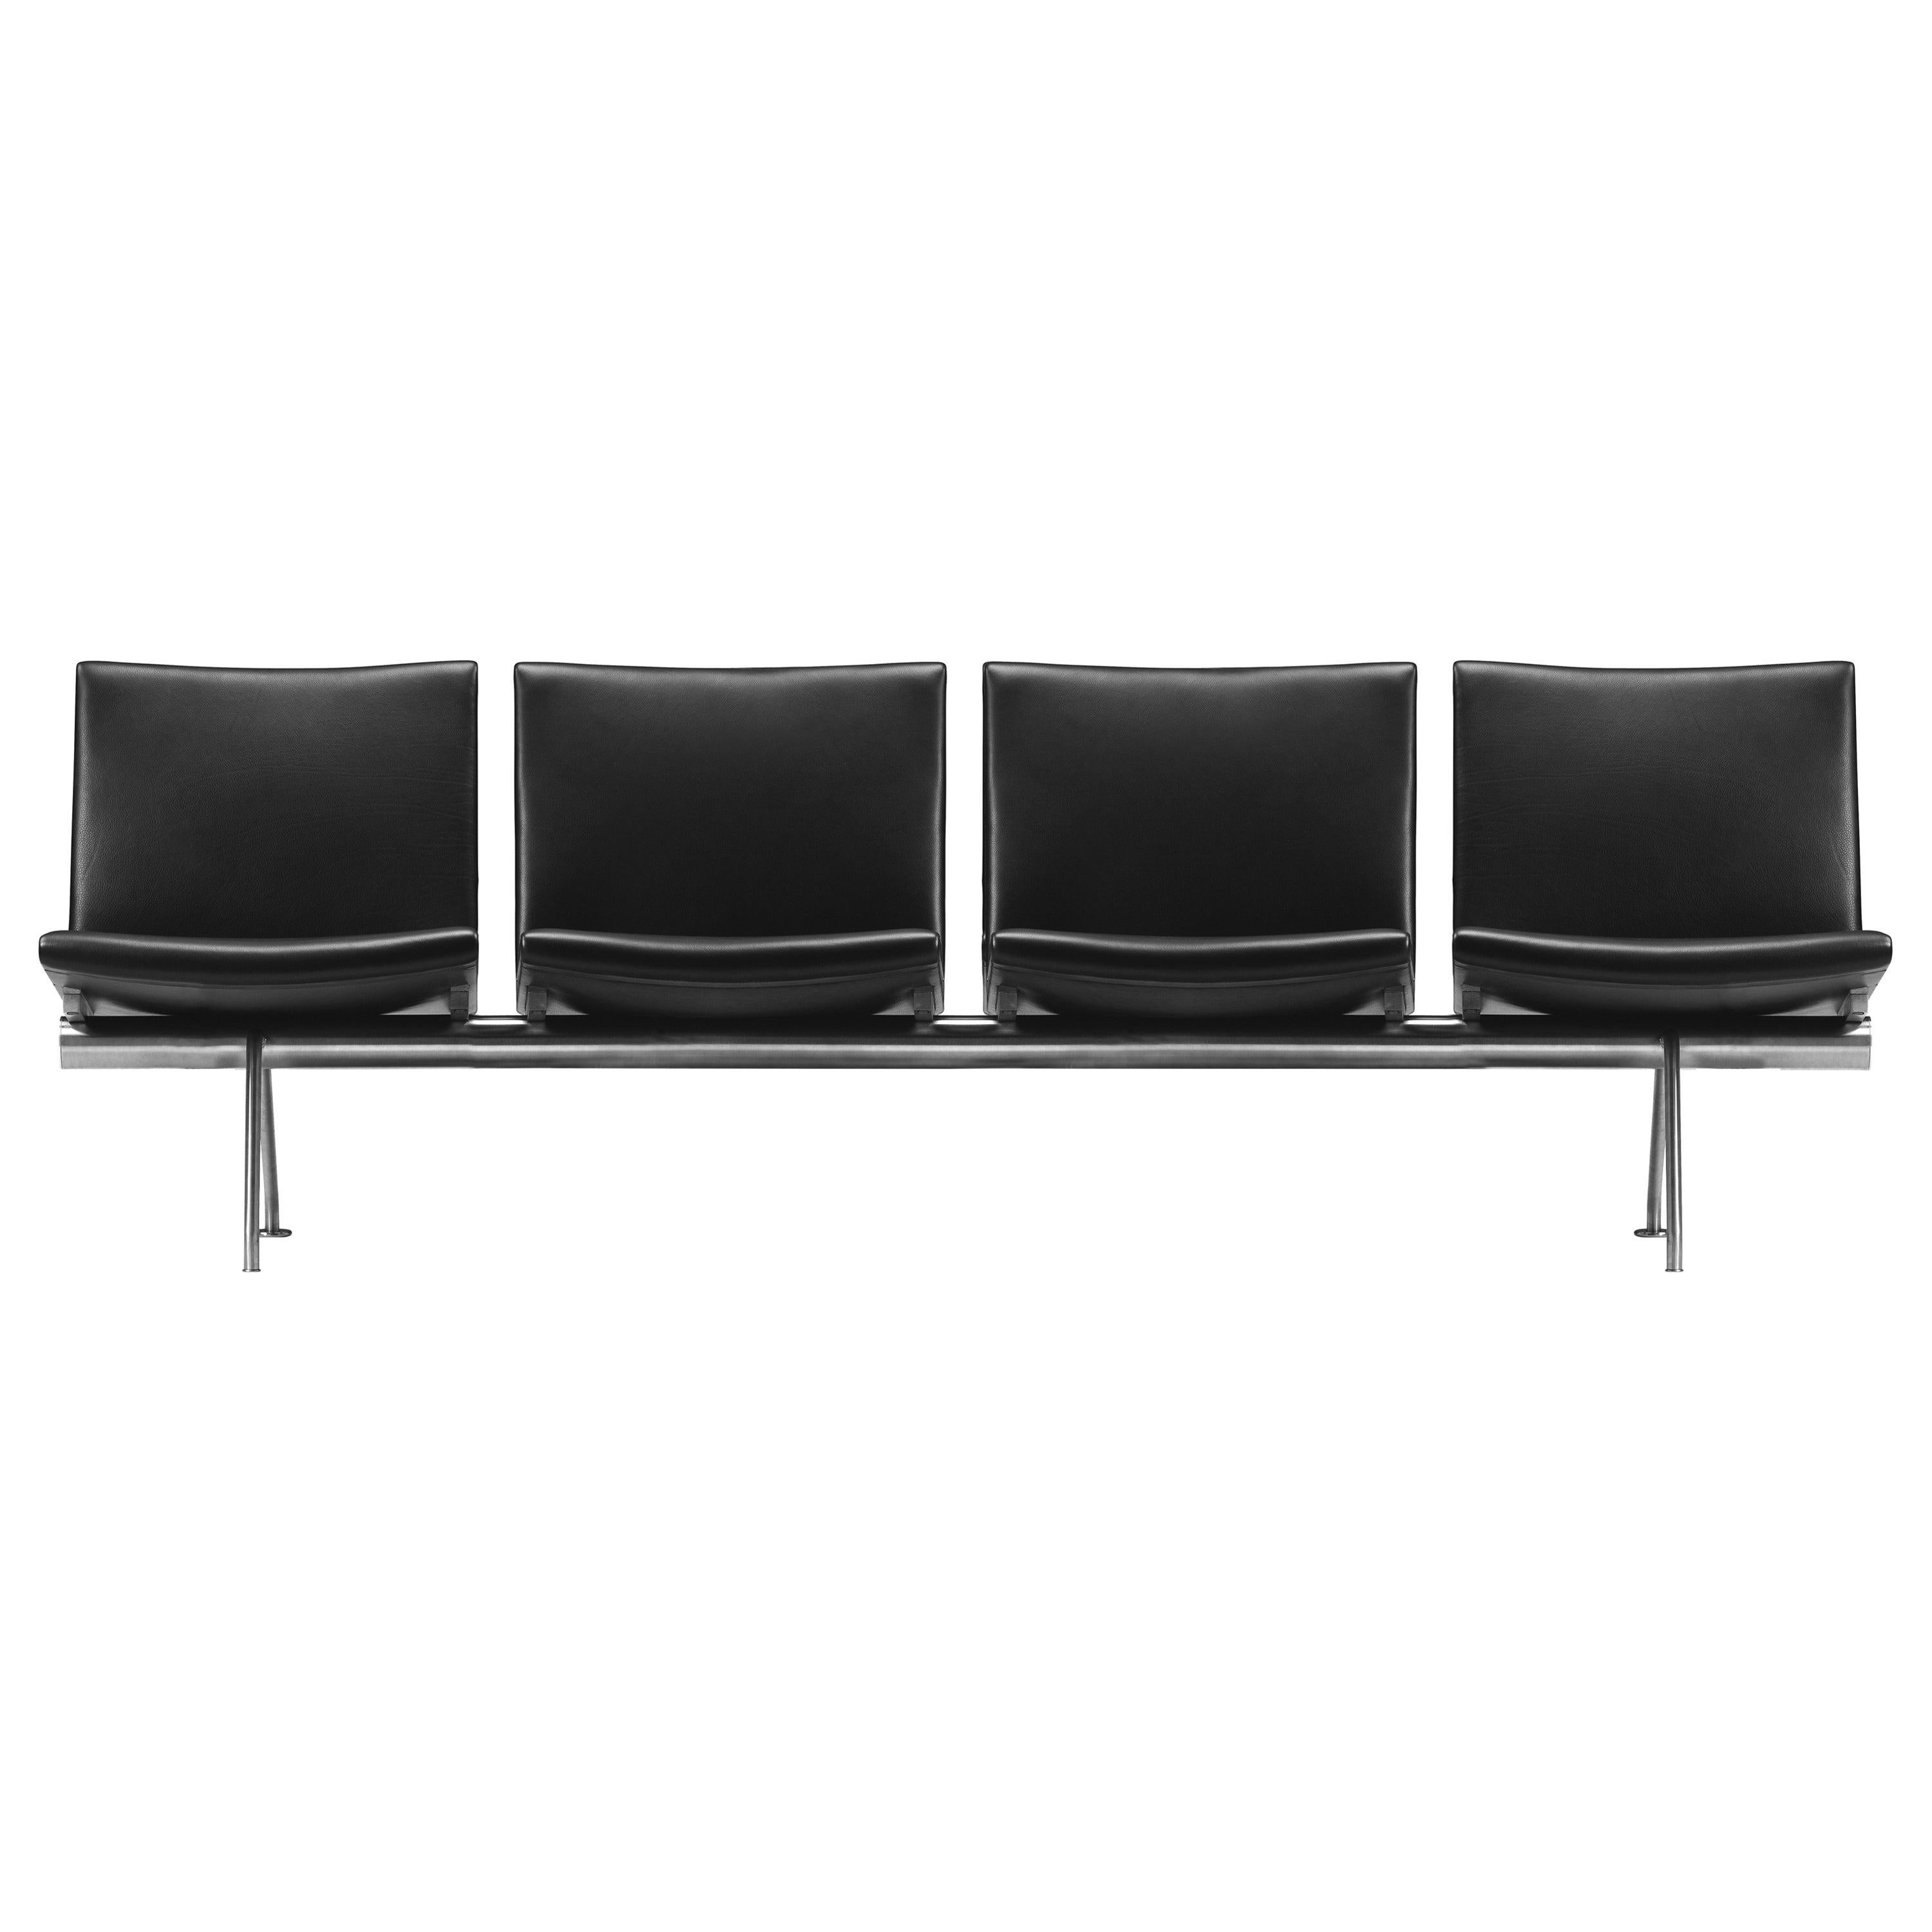 CH404 4-Seat Kastrup Sofa in Steel & Thor 301 Leather Seat by Hans J. Wegner